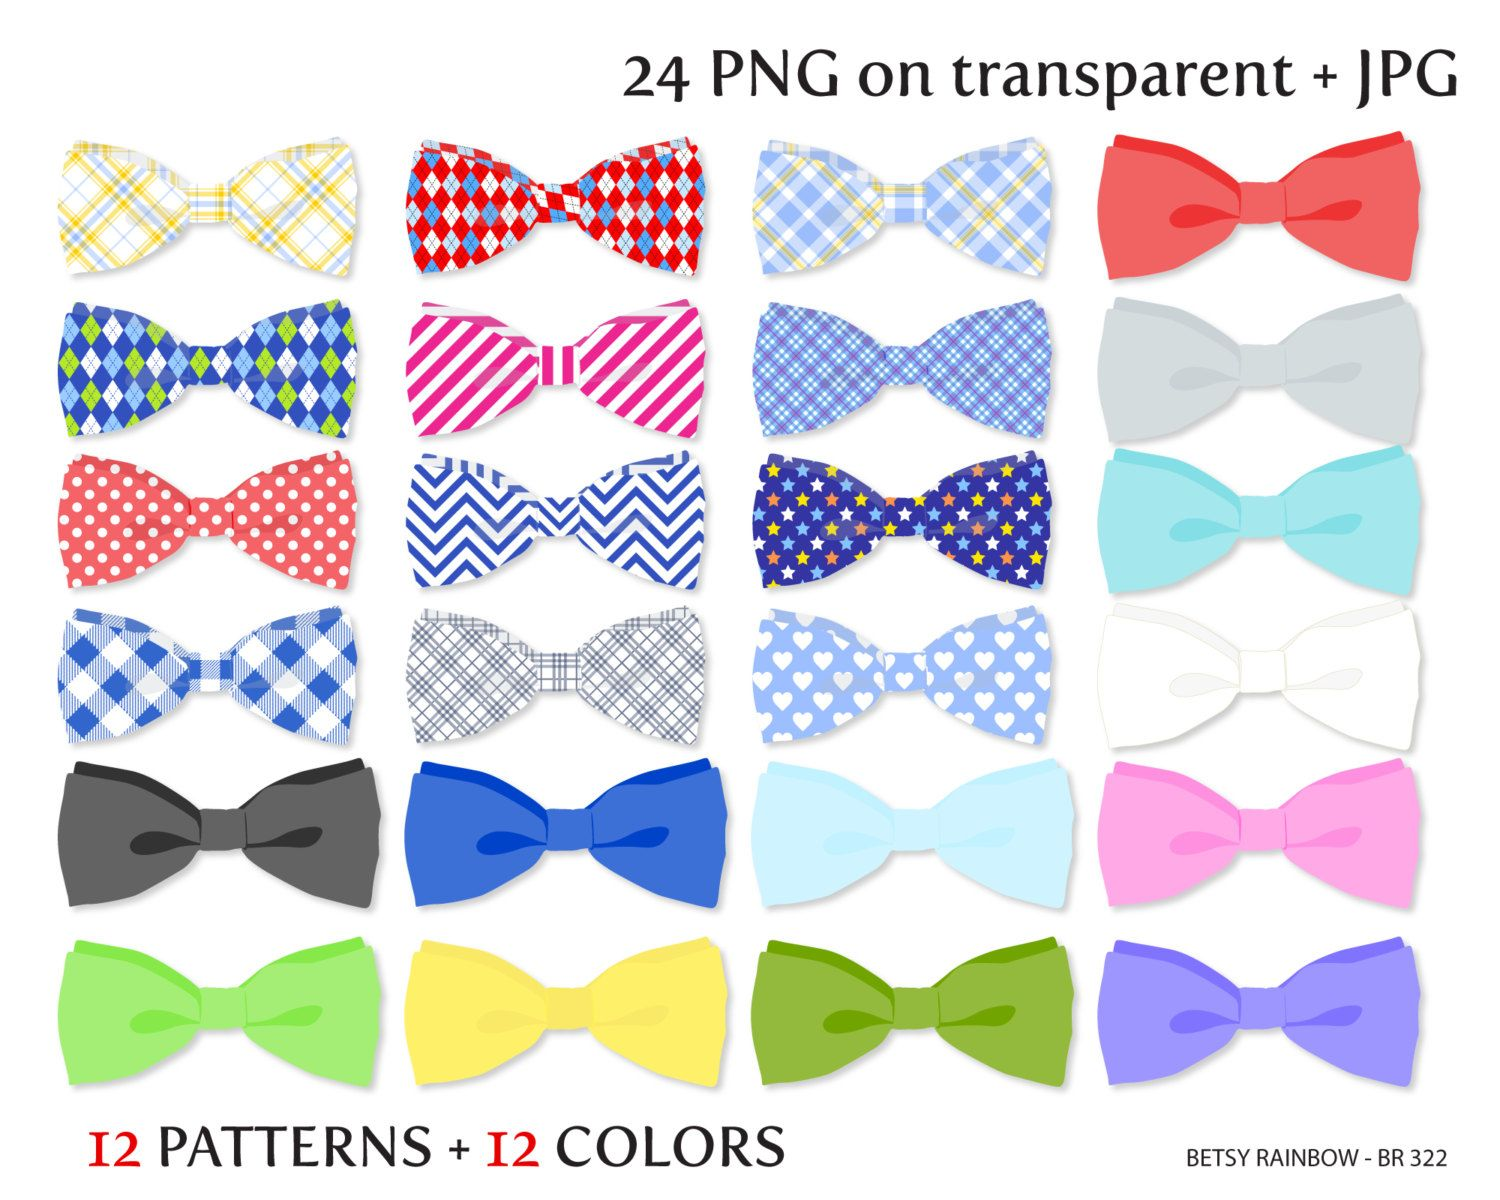 Bow tie clipart PNG and JPG neck bow tie clipart by BetsyRainbow ...